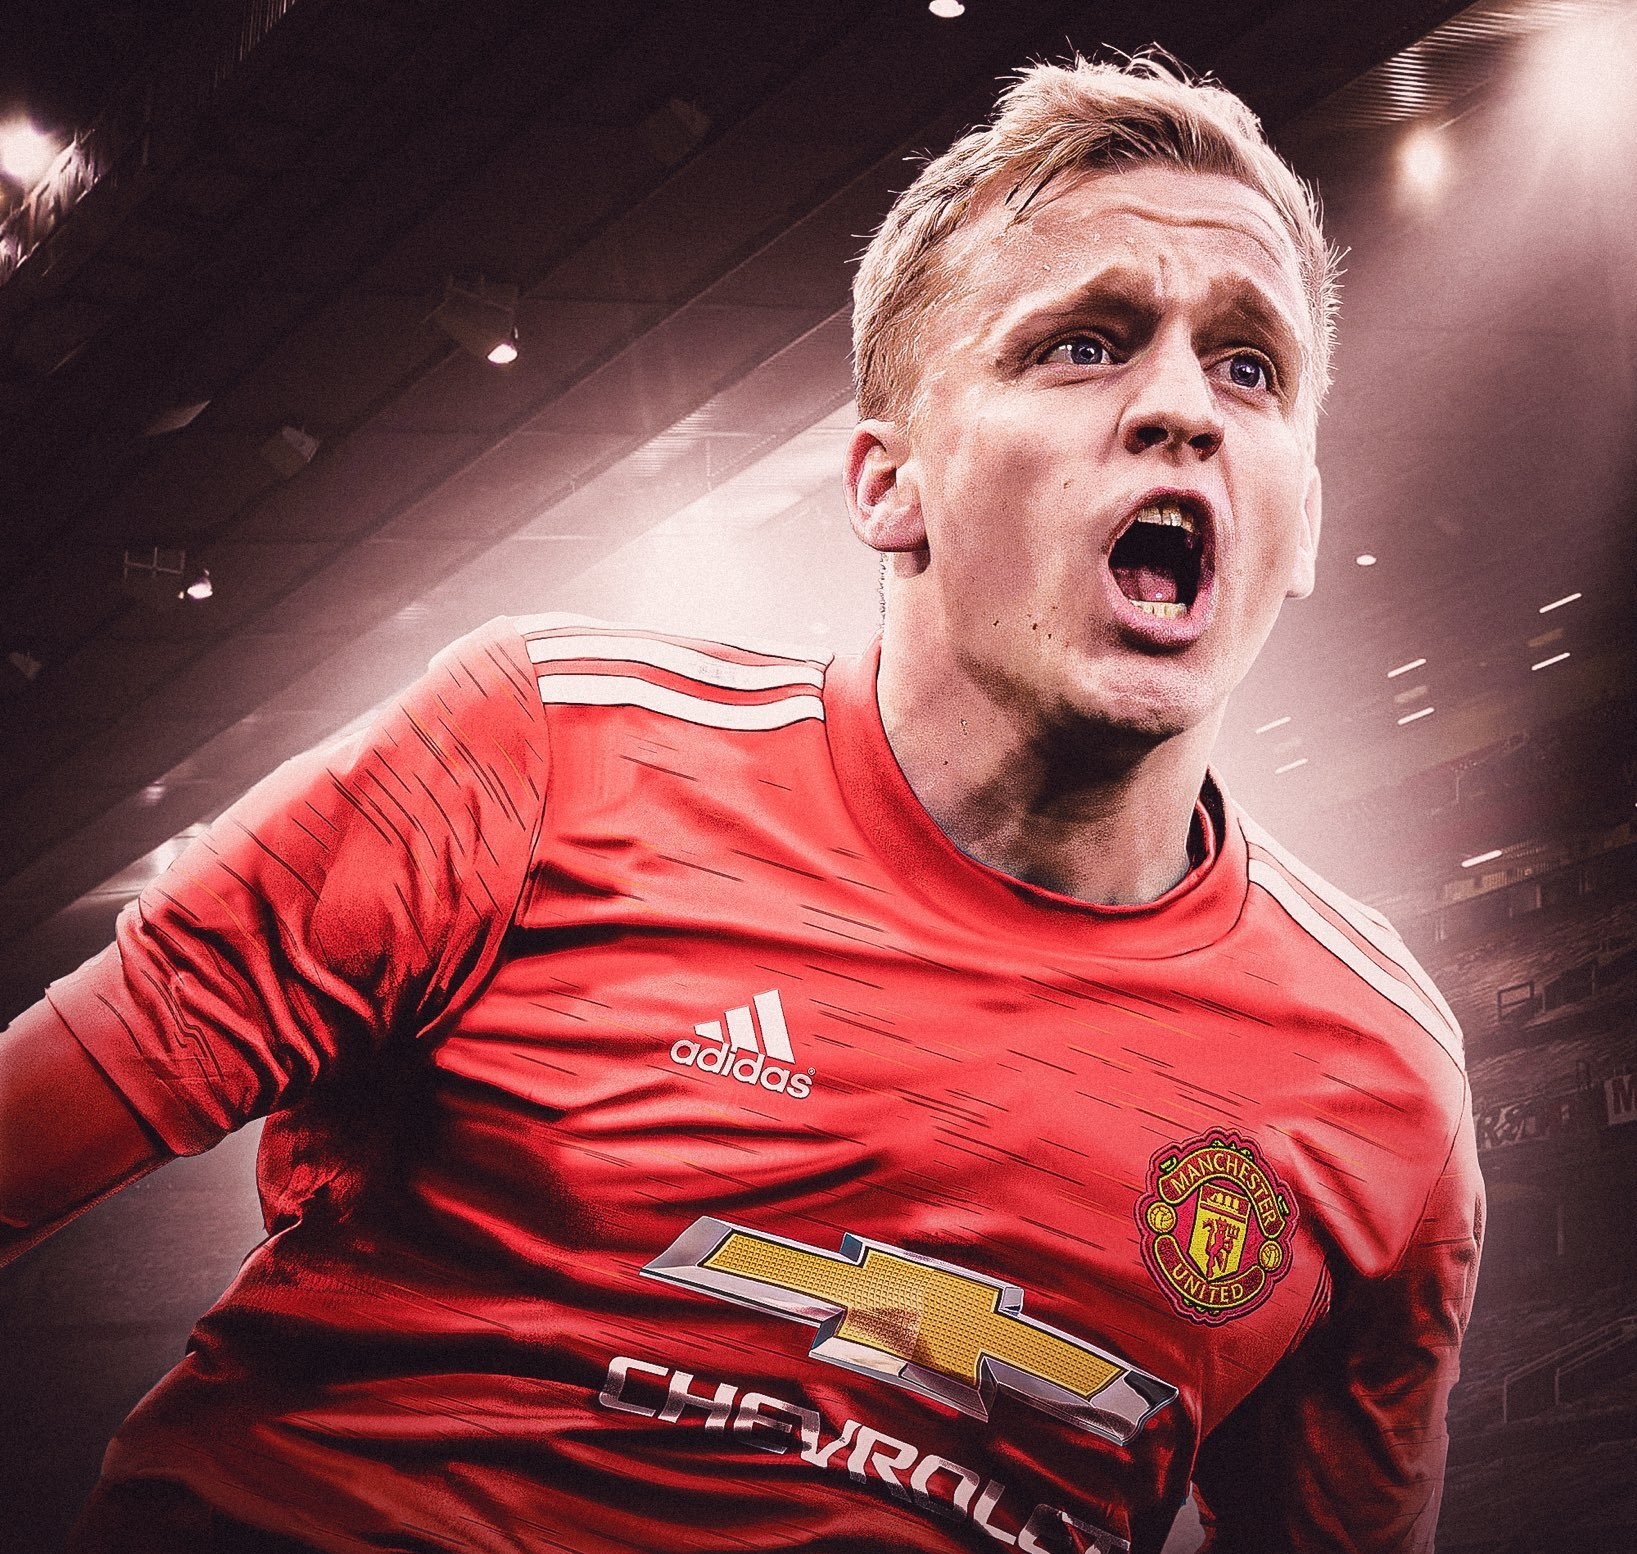 Manchester United Completes Signing Of Van de Beek For €40m From Ajax